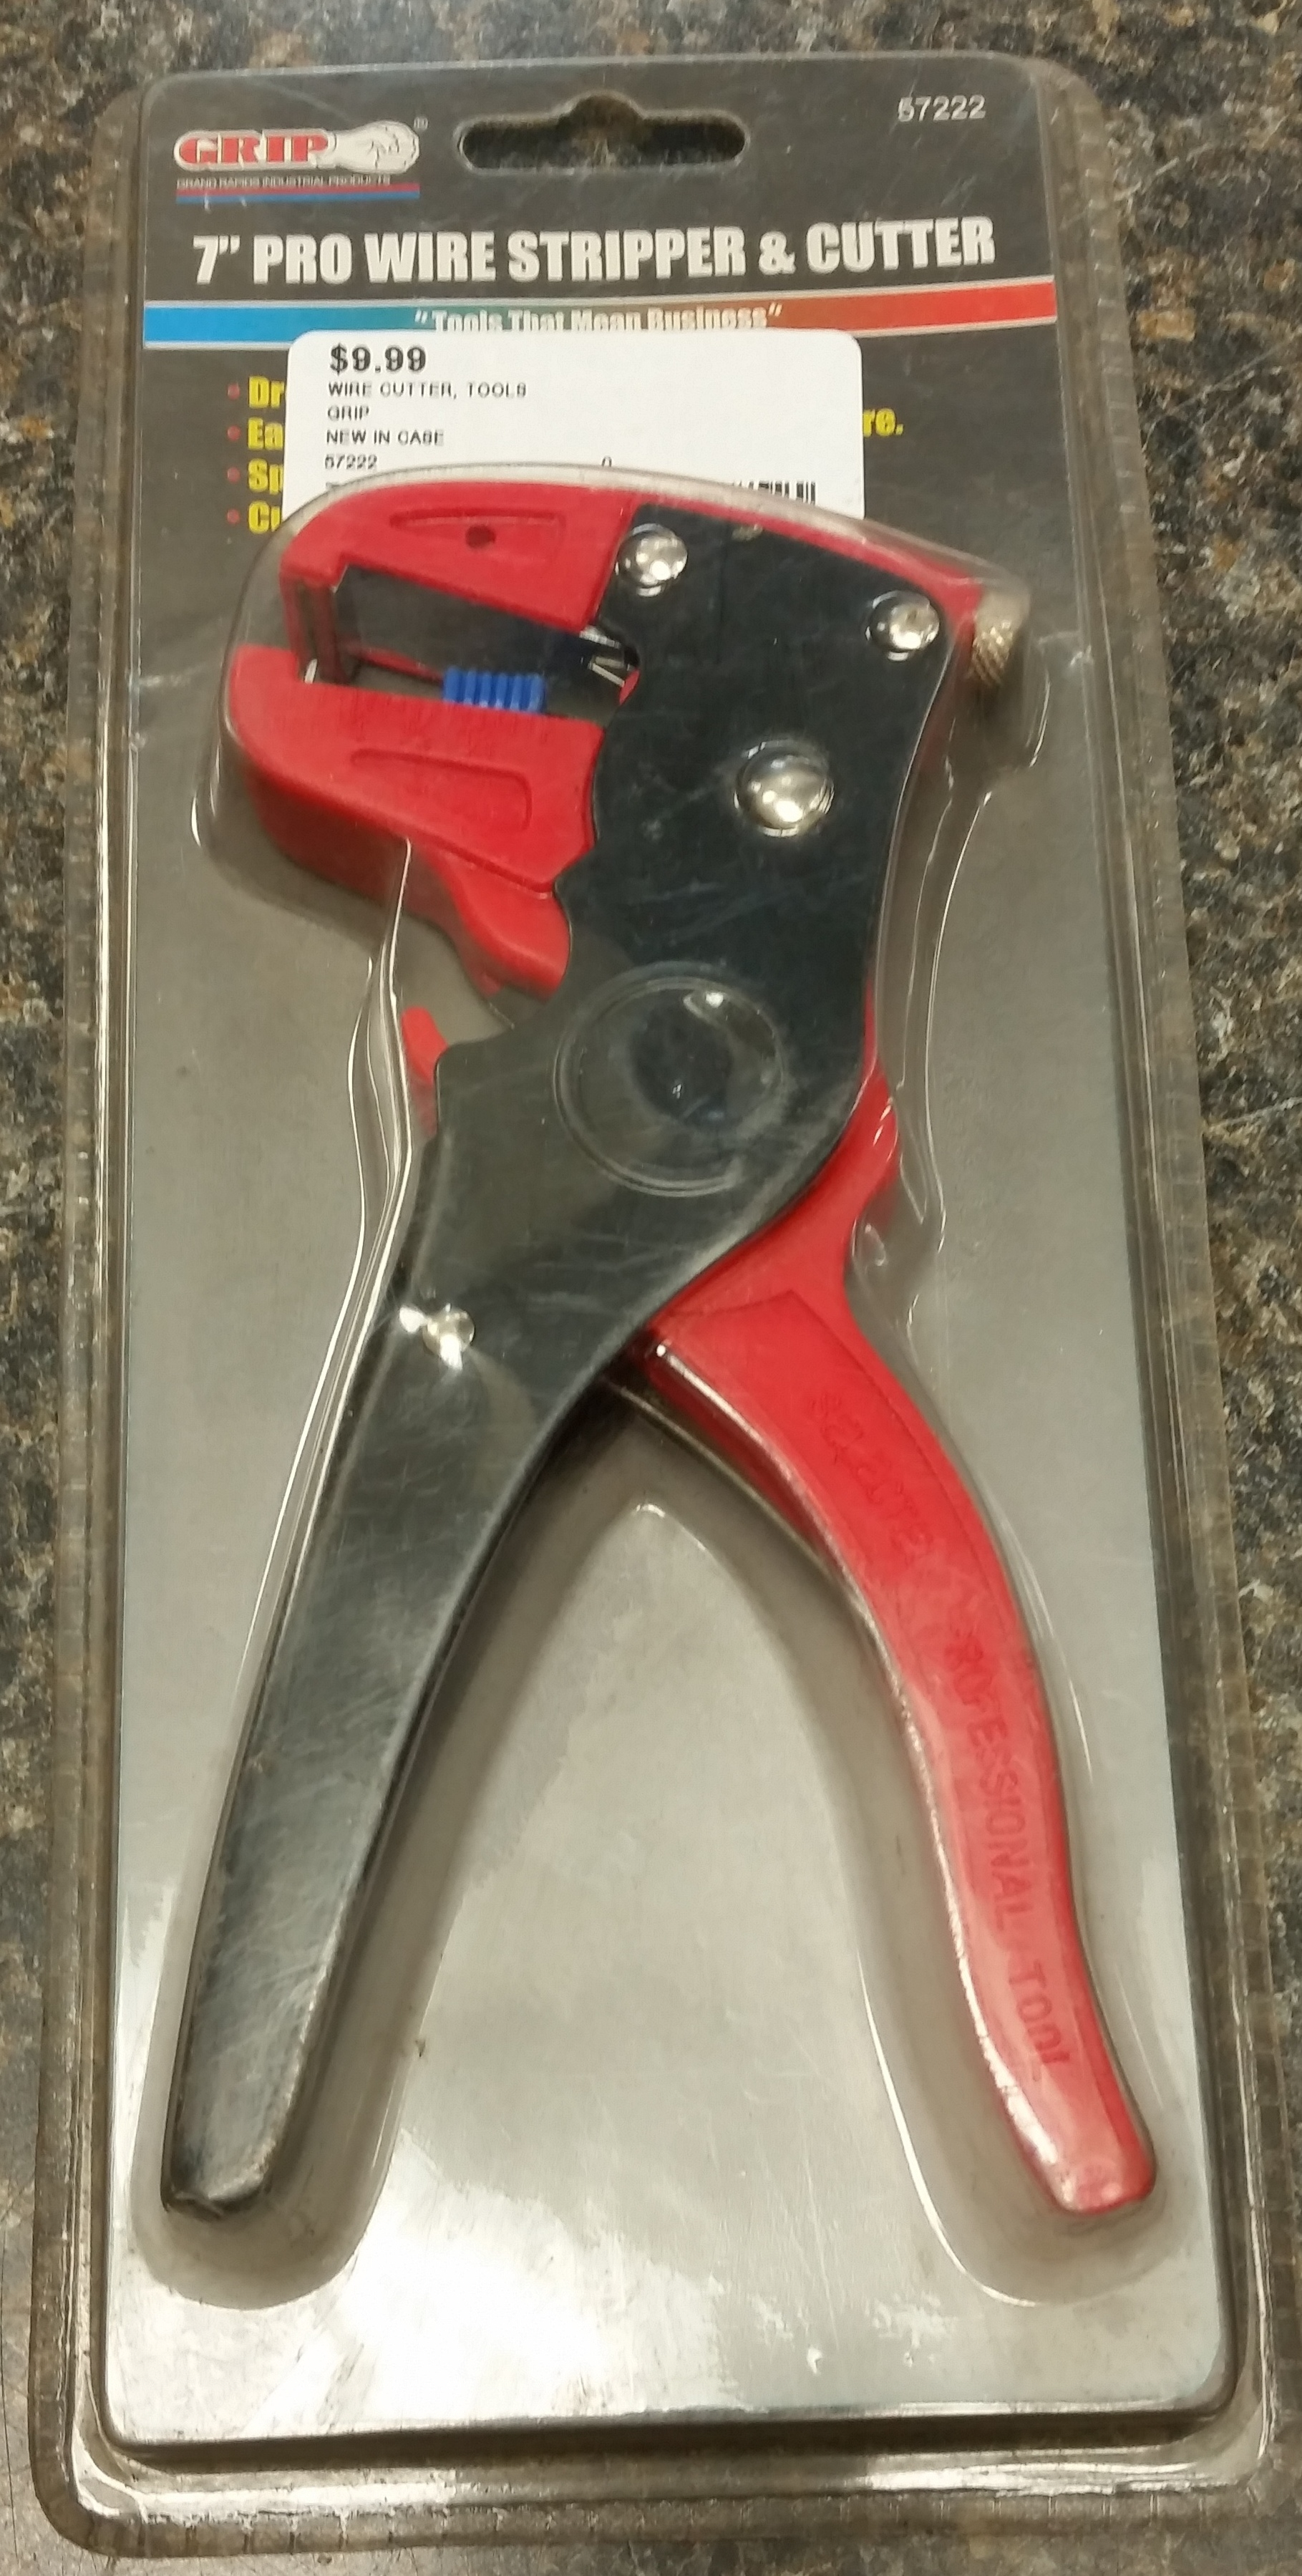 GRIP - 57222 - WIRE CUTTER TOOLS